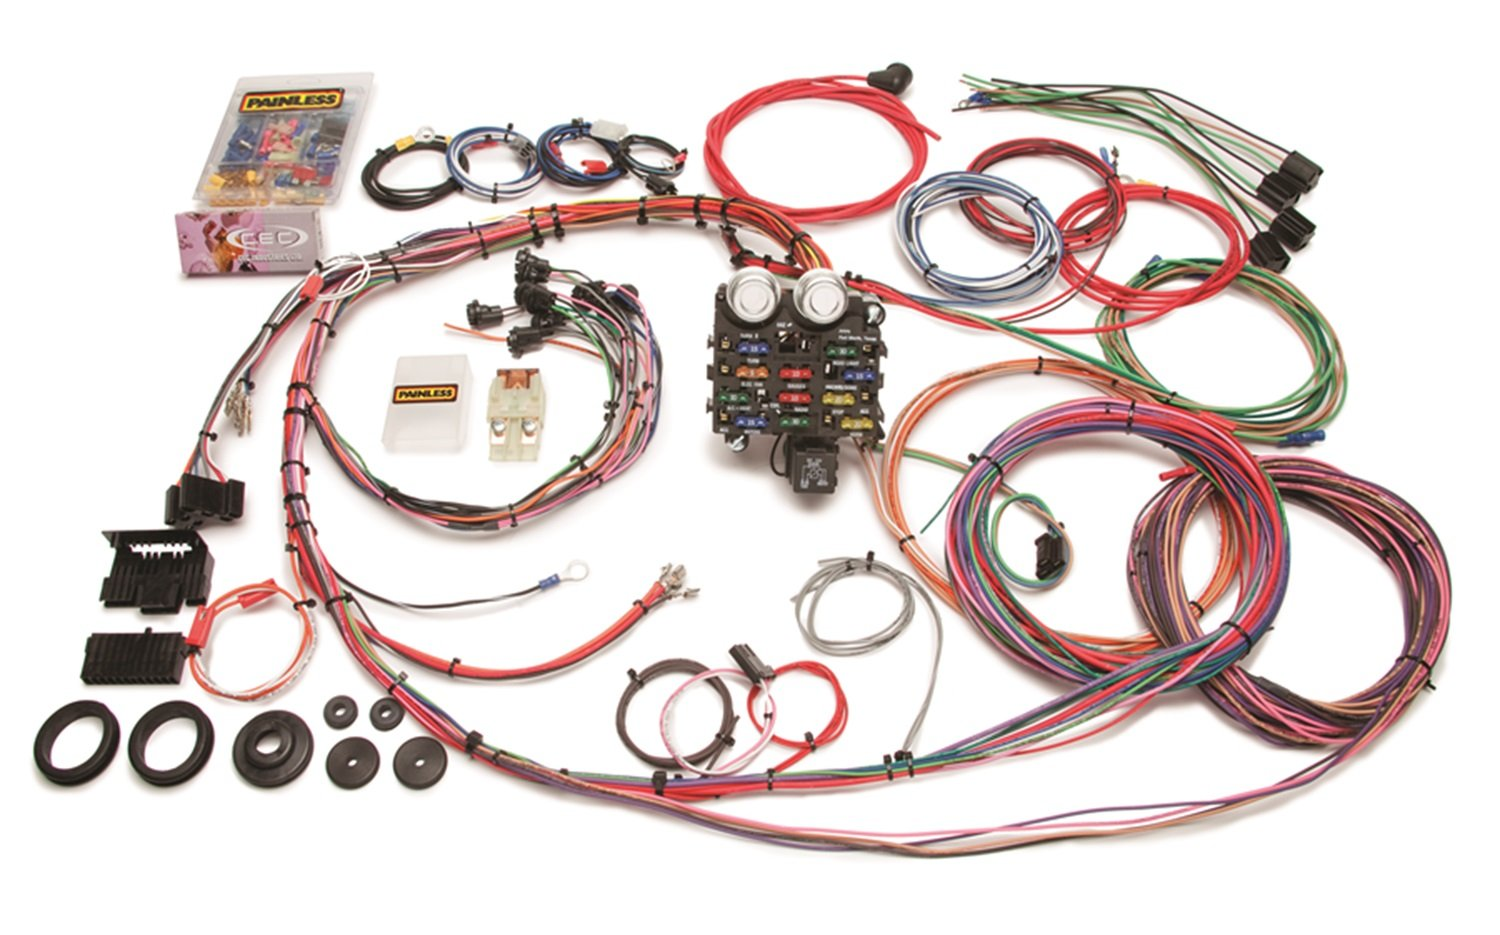 71Ove05FJxL._SL1500_ amazon com painless 10112 12 circuit pickup harness automotive Trailer Wiring Harness at soozxer.org